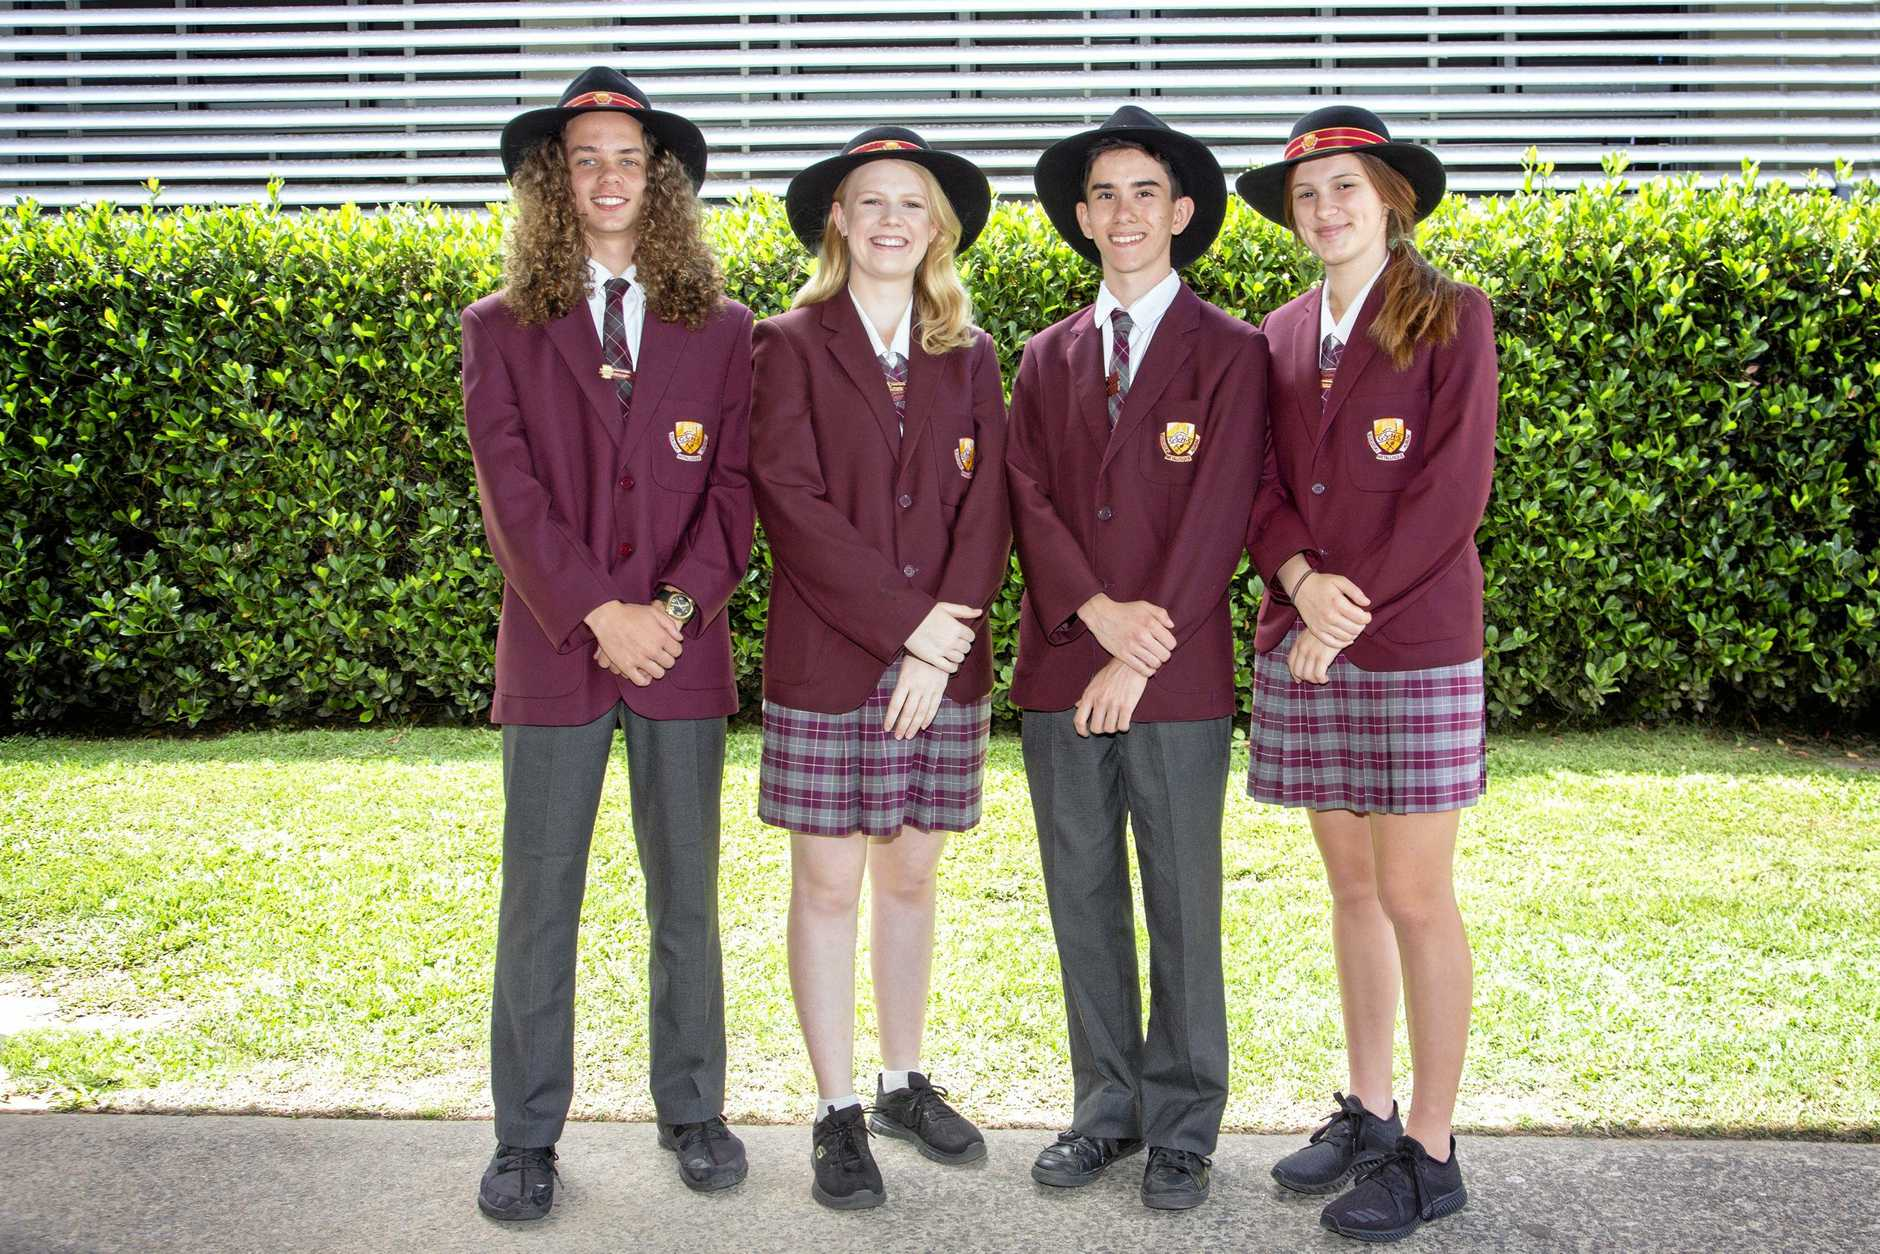 SENIOR LEADERS: Gympie State High School's senior leaders for next year are (from left) Lewiis Crump, Emily Noon, Jack Marshall and Amelia McDermott.